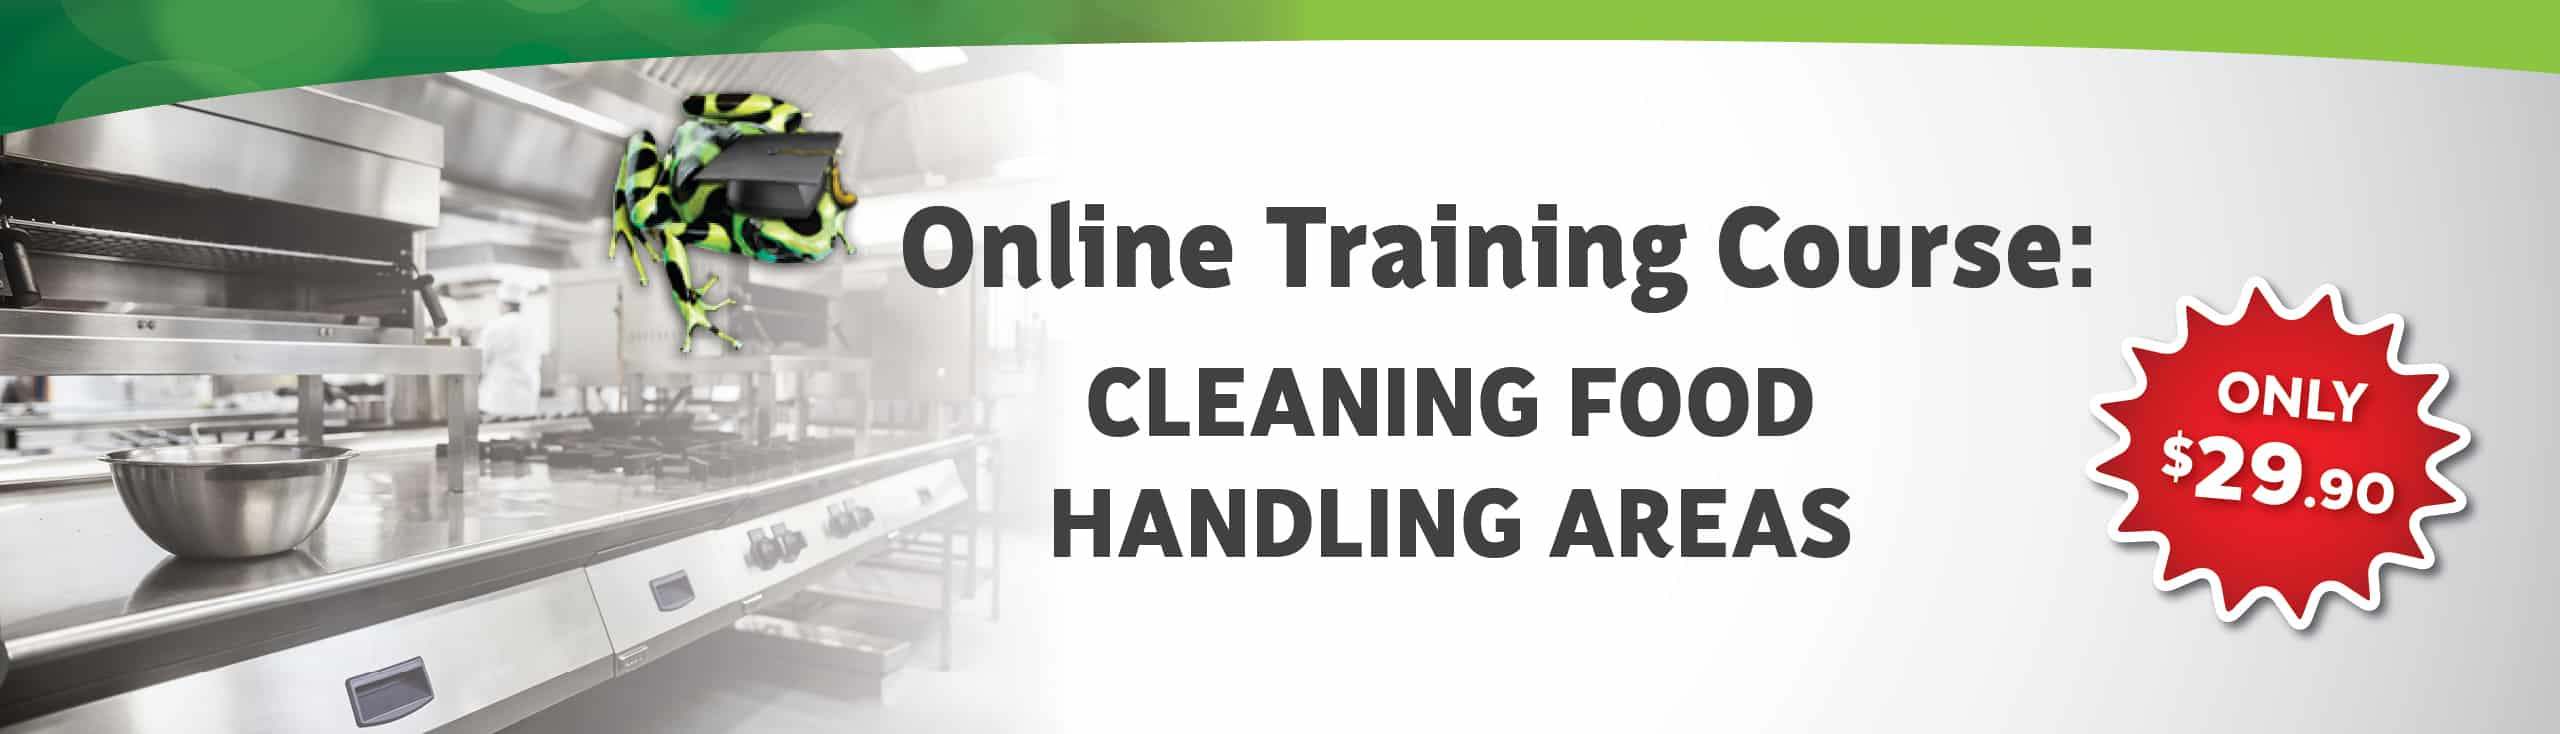 Cleaning Food Handling Areas Course